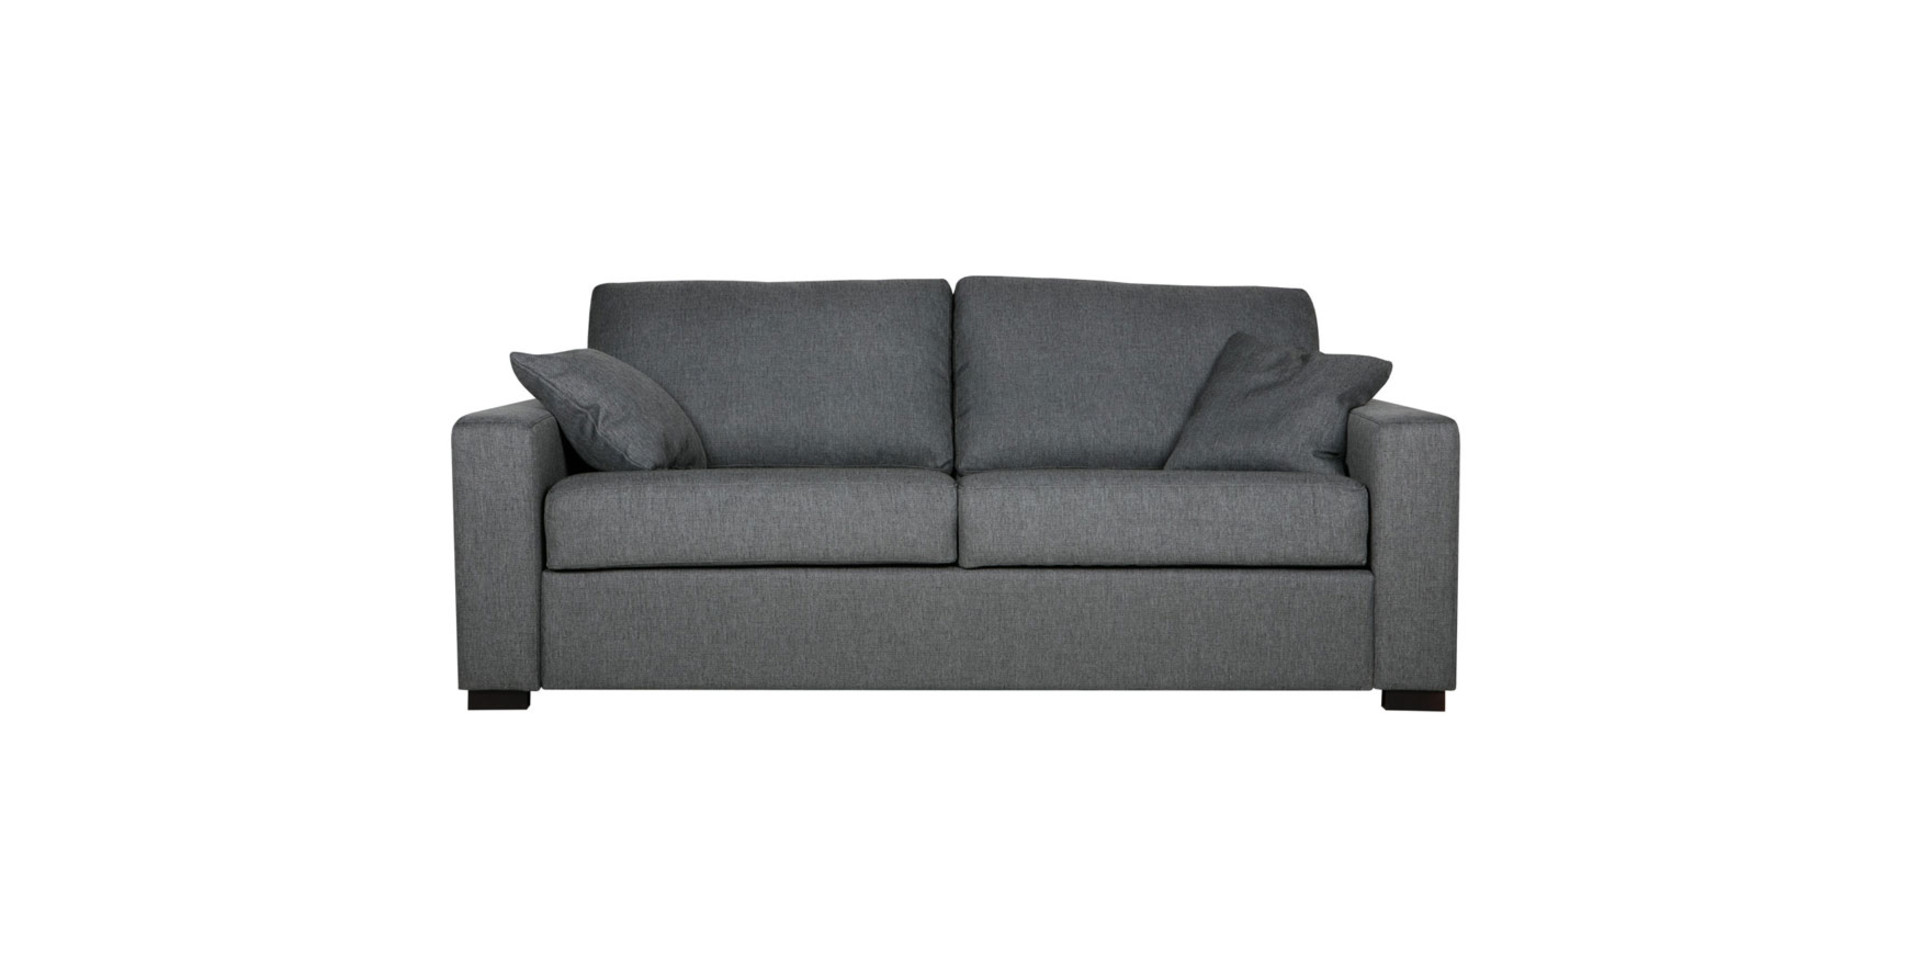 sits-lukas-canape-convertible-sofa_bed3_nancy6_dark_grey_1